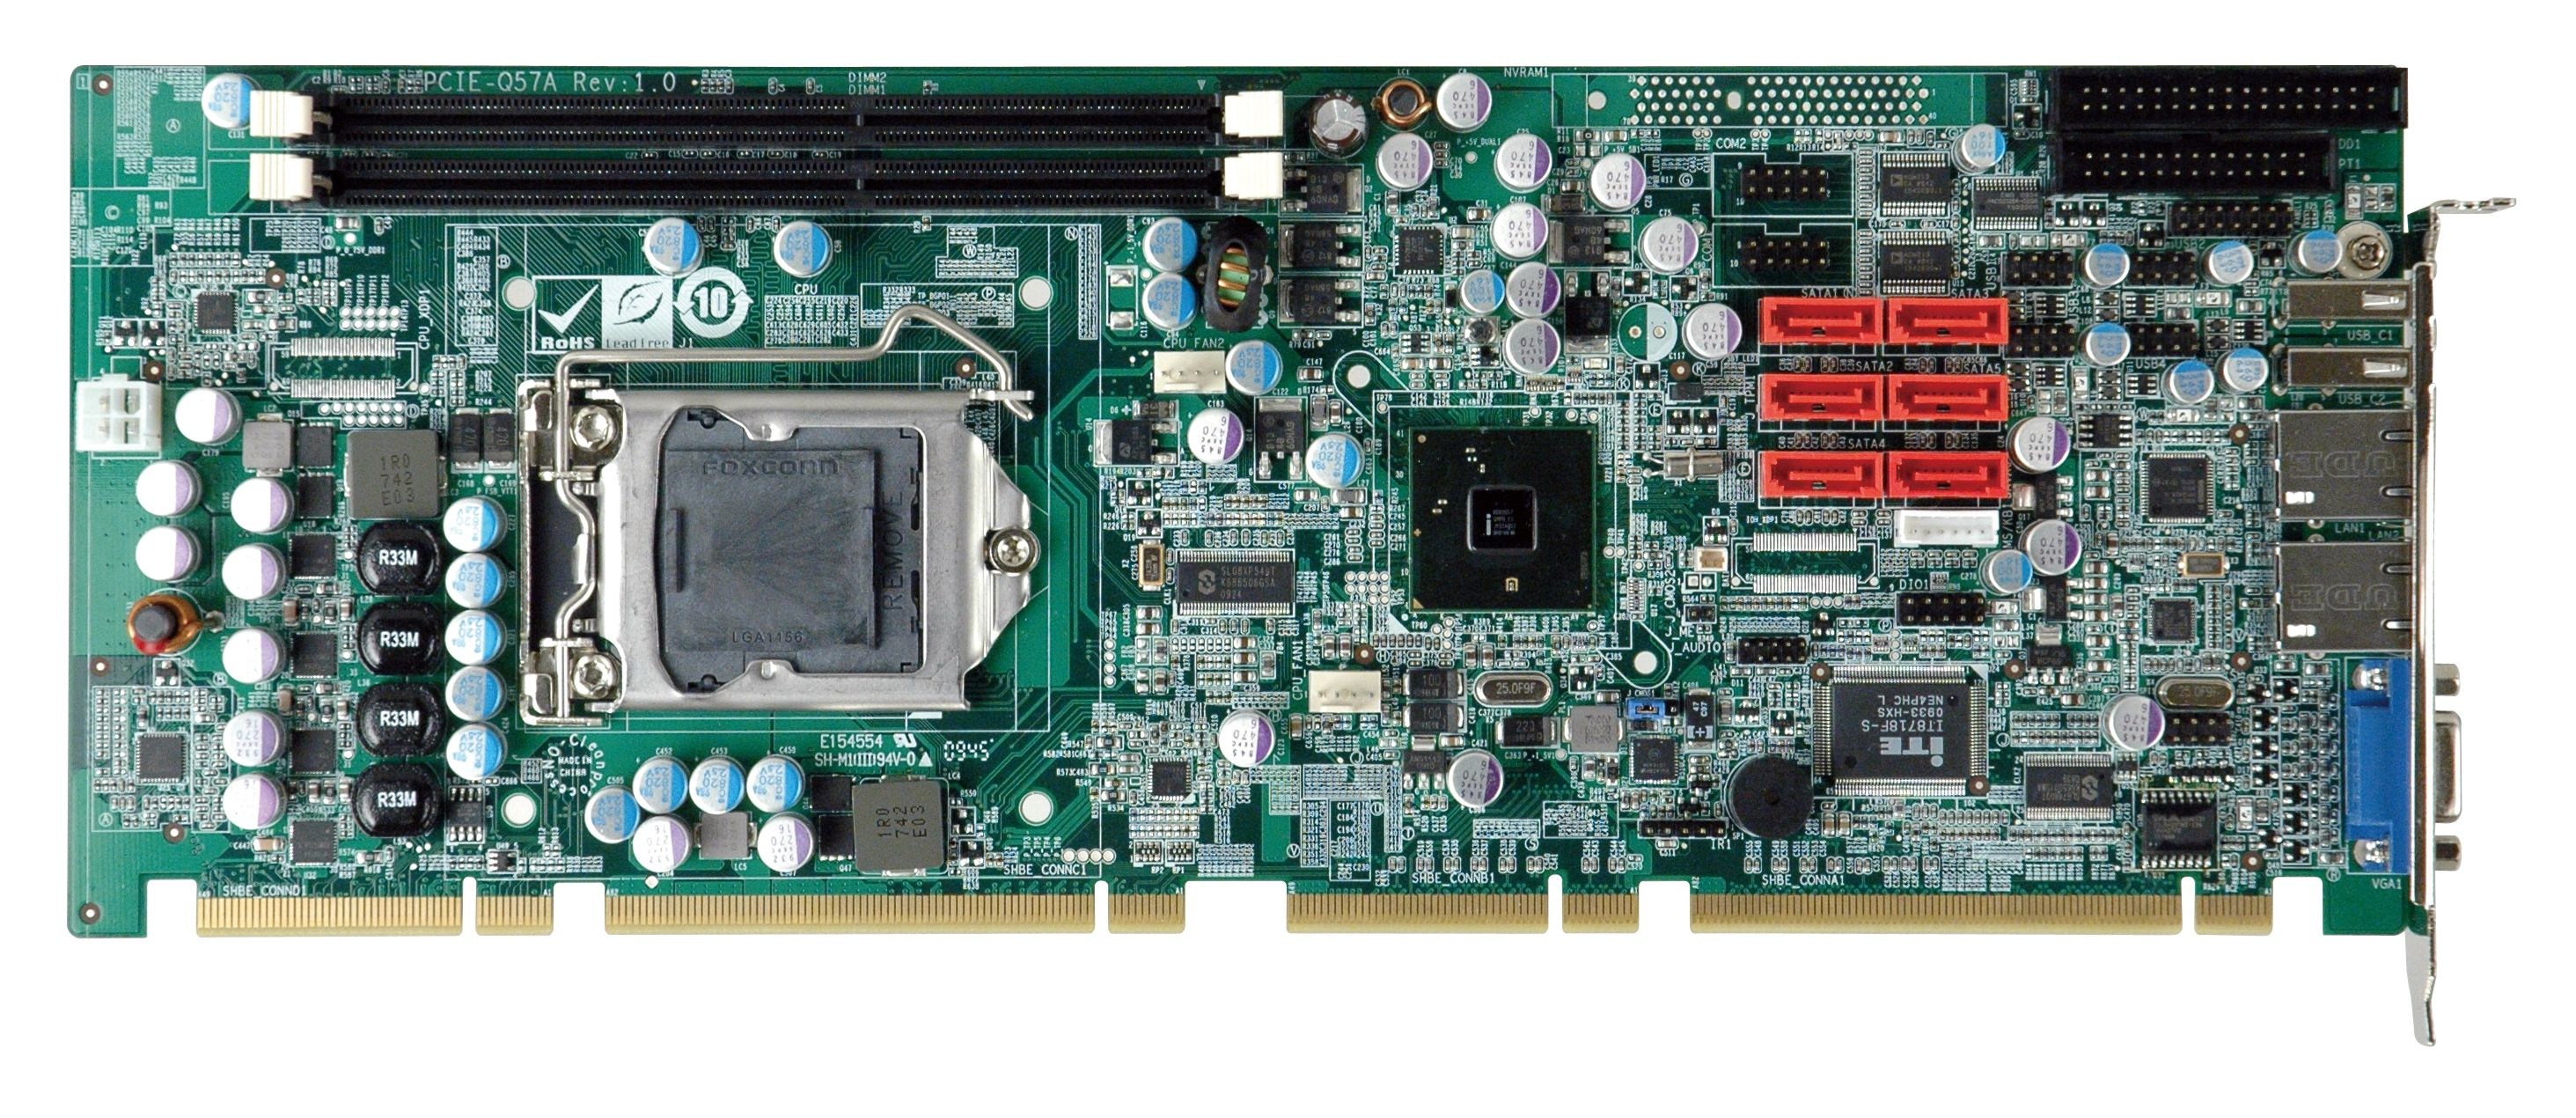 1400 x 425 images technology - Ieiworld Pcie Q57a